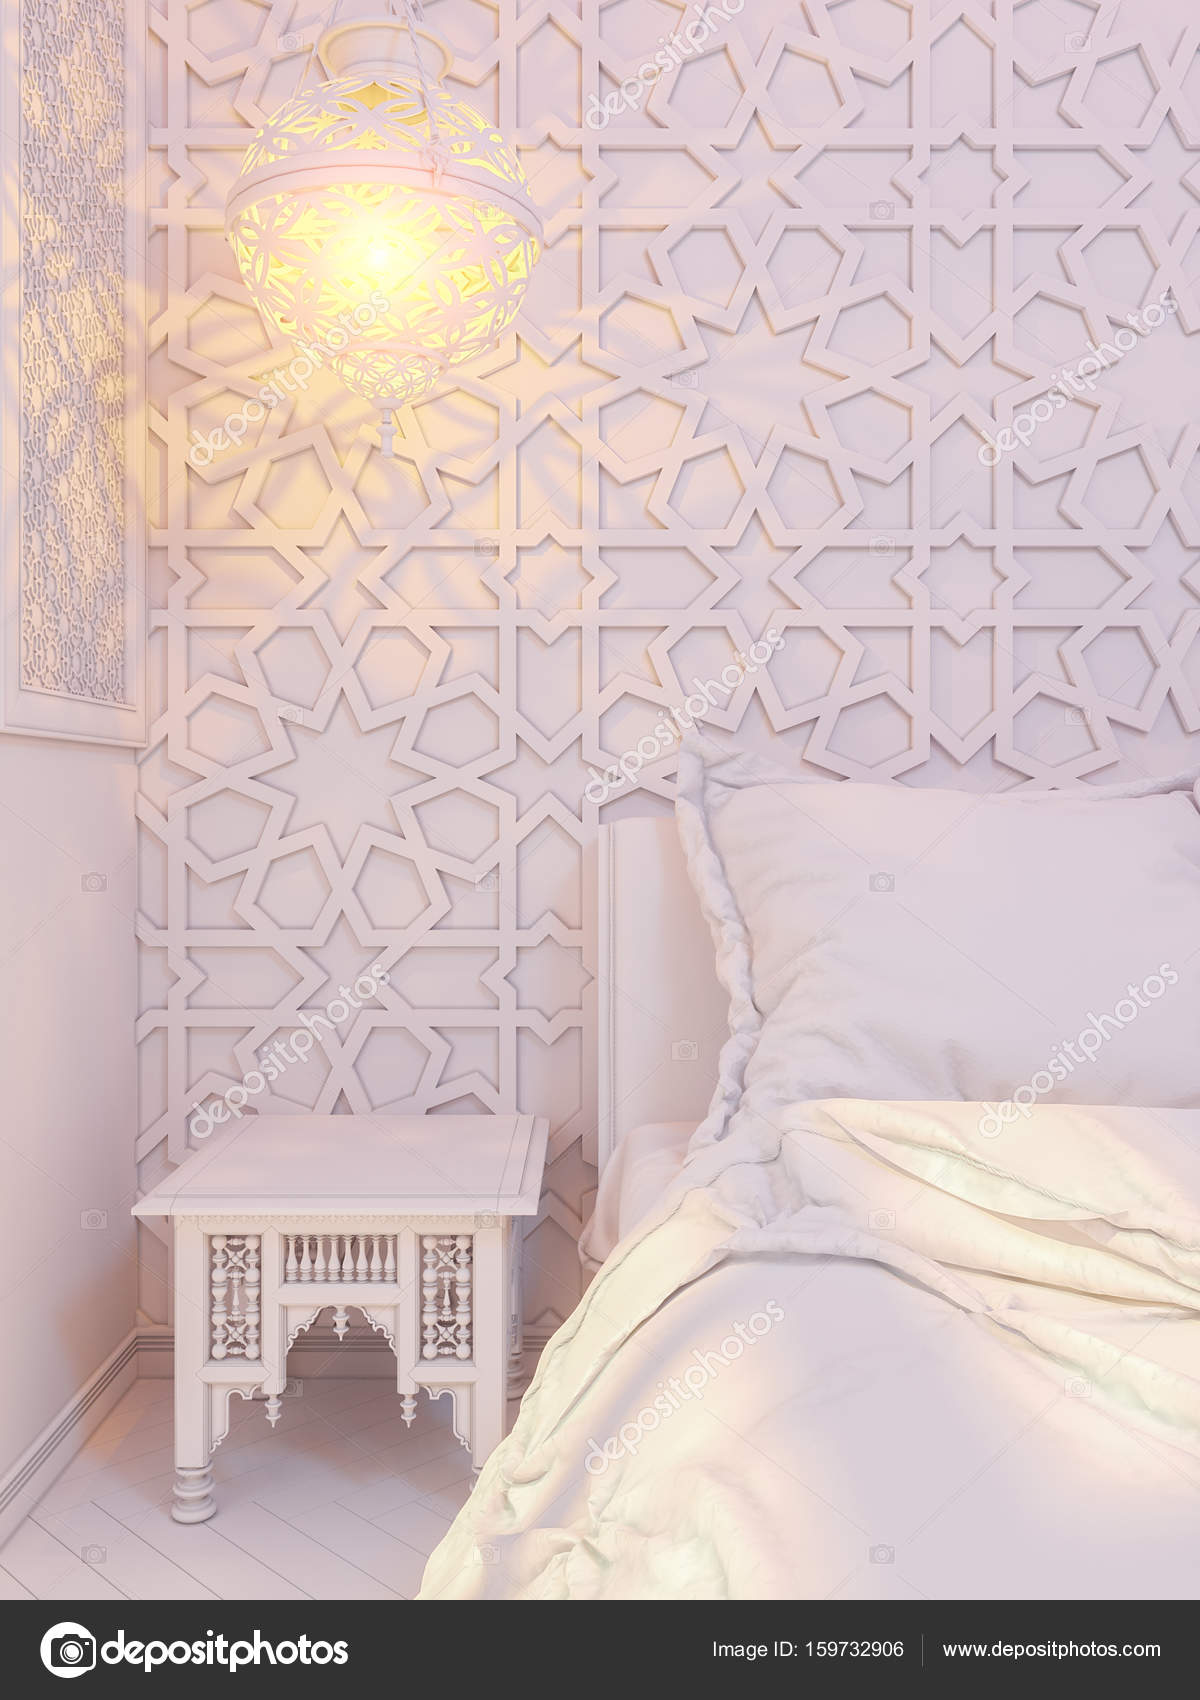 3d Illustration Bedroom Interior Design Of A Hotel Room In Traditional Islamic Style Deluxe Background View Decorated With Arabian Motifs